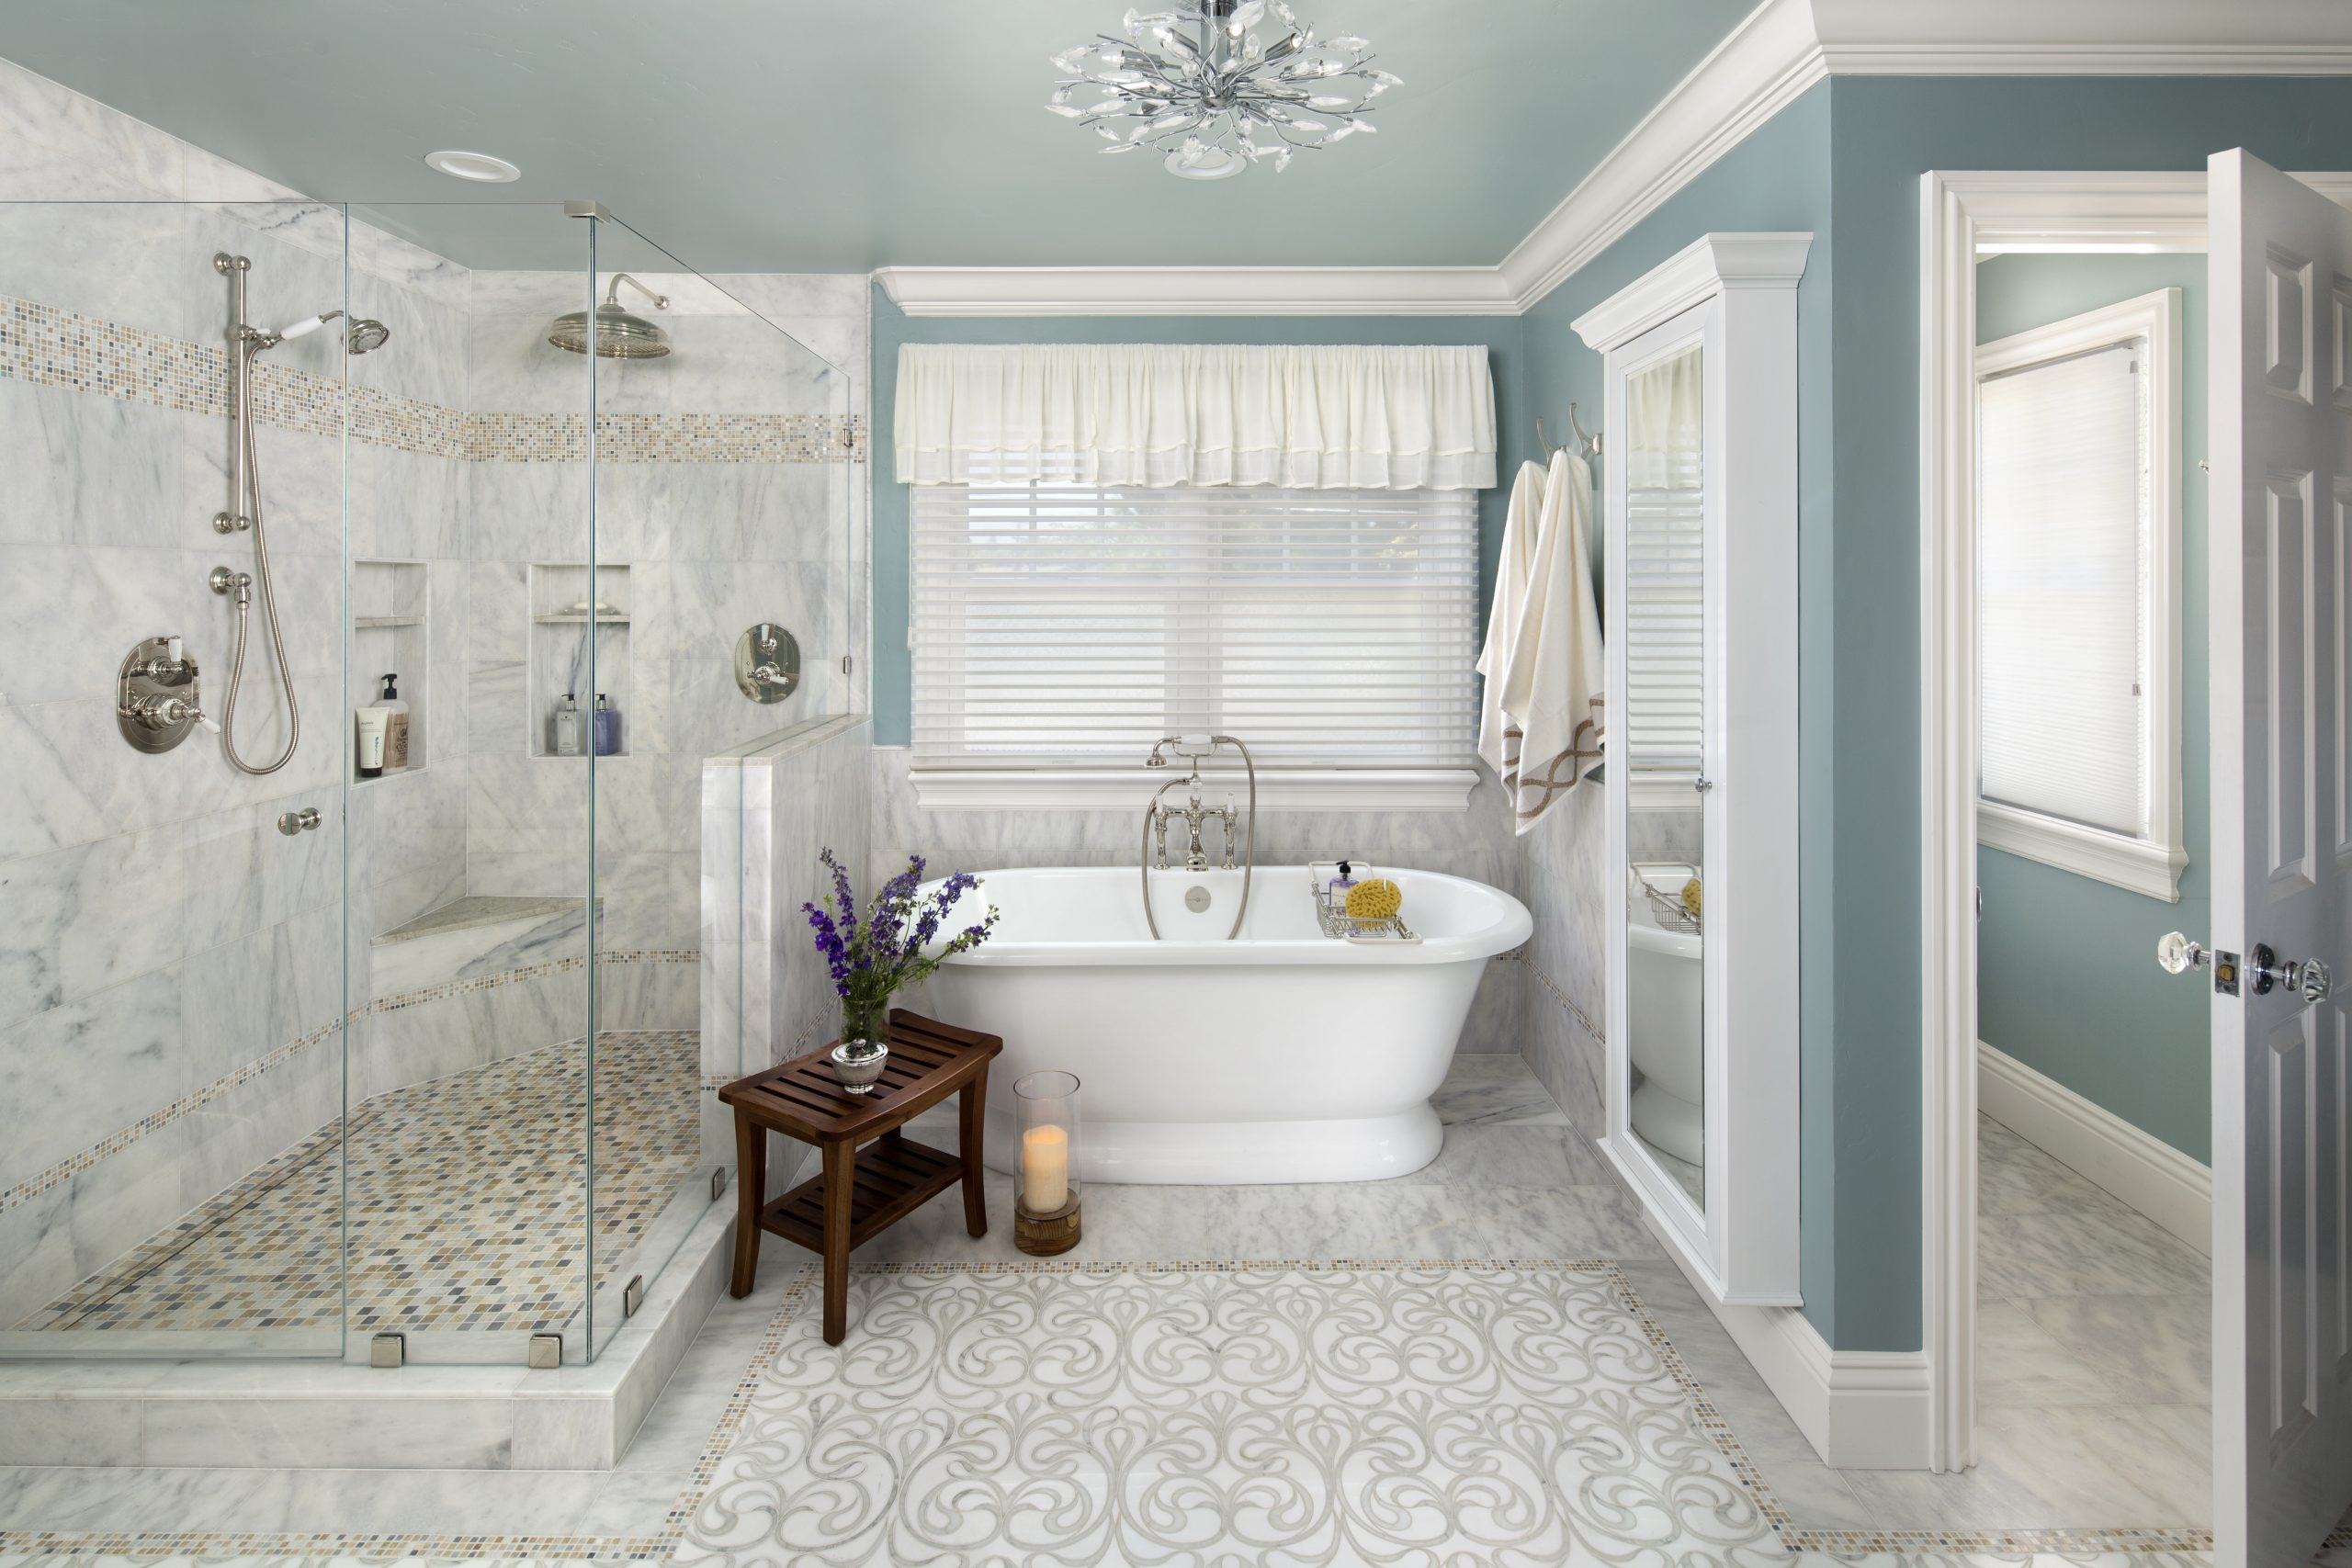 A traditional style bathroom with porcelain tub and glass shower.